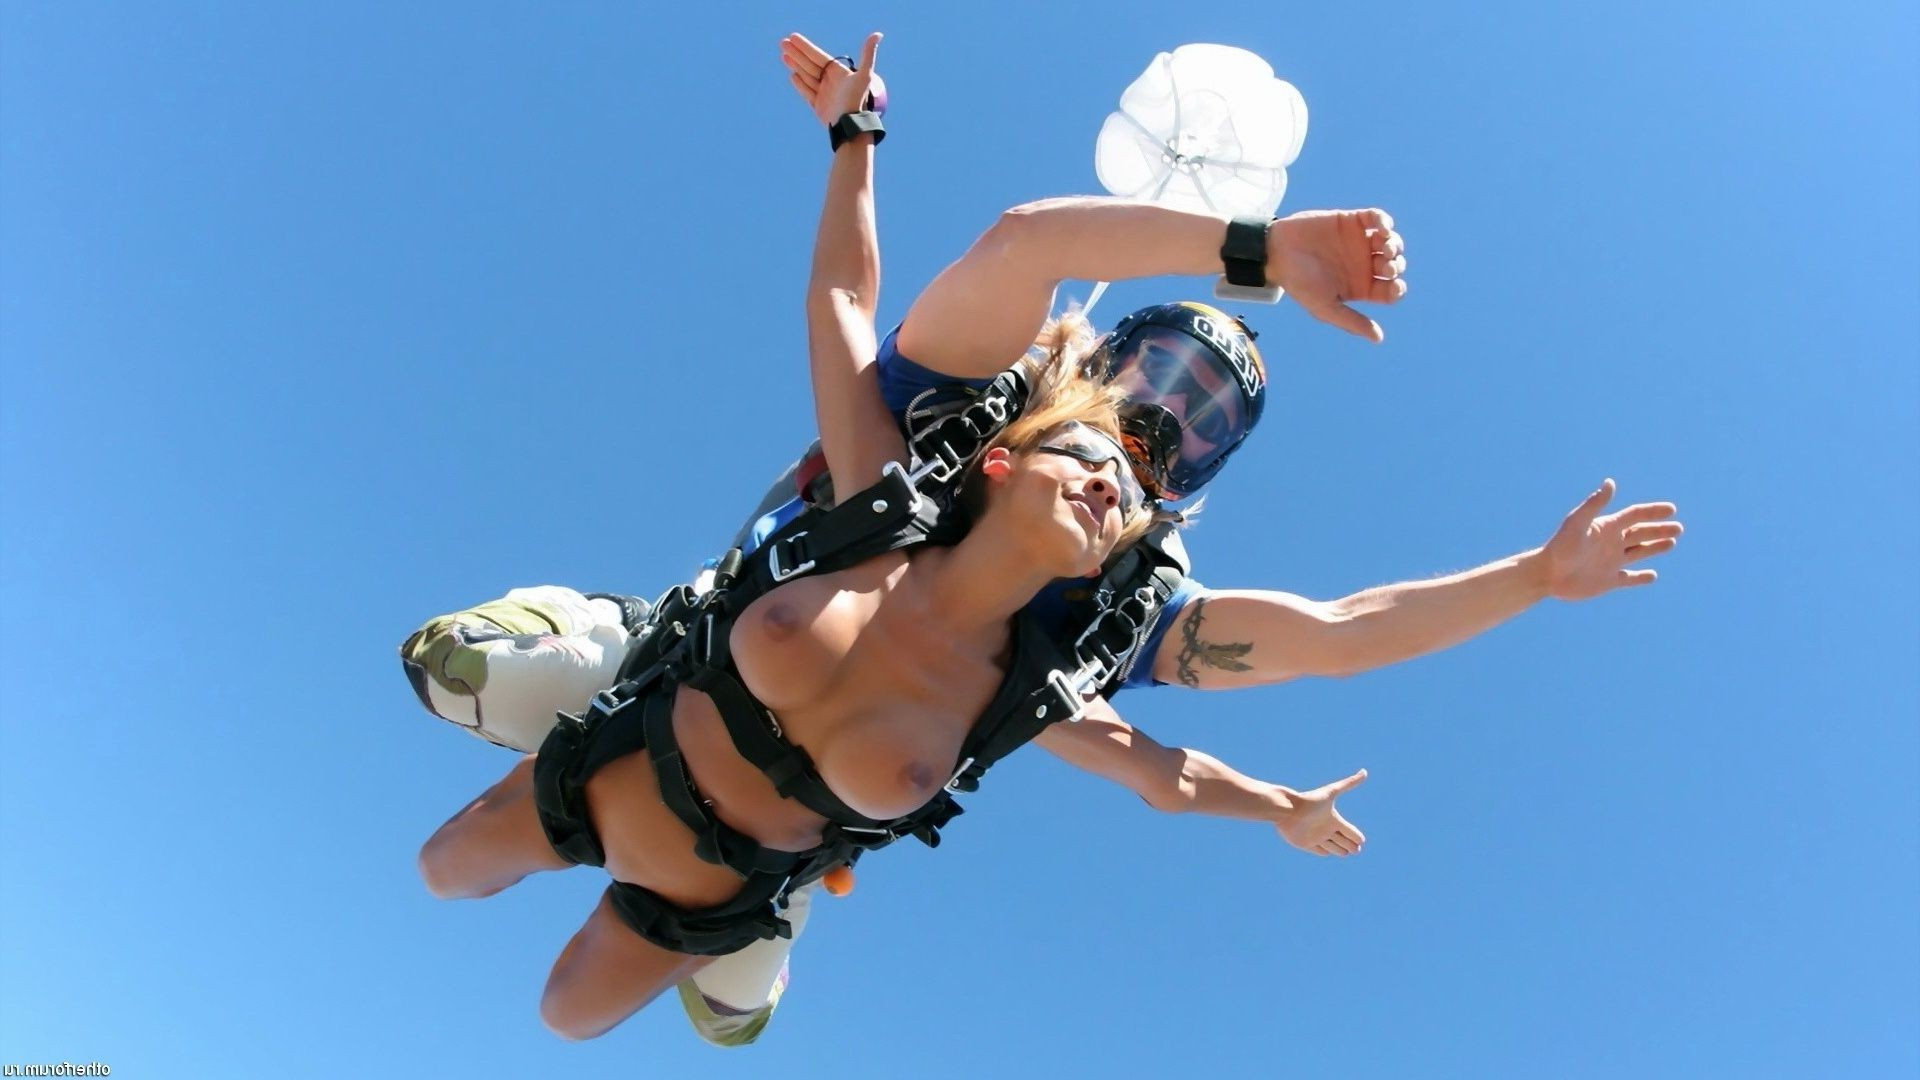 Naked girl jumped with a parachute with an instructor behind